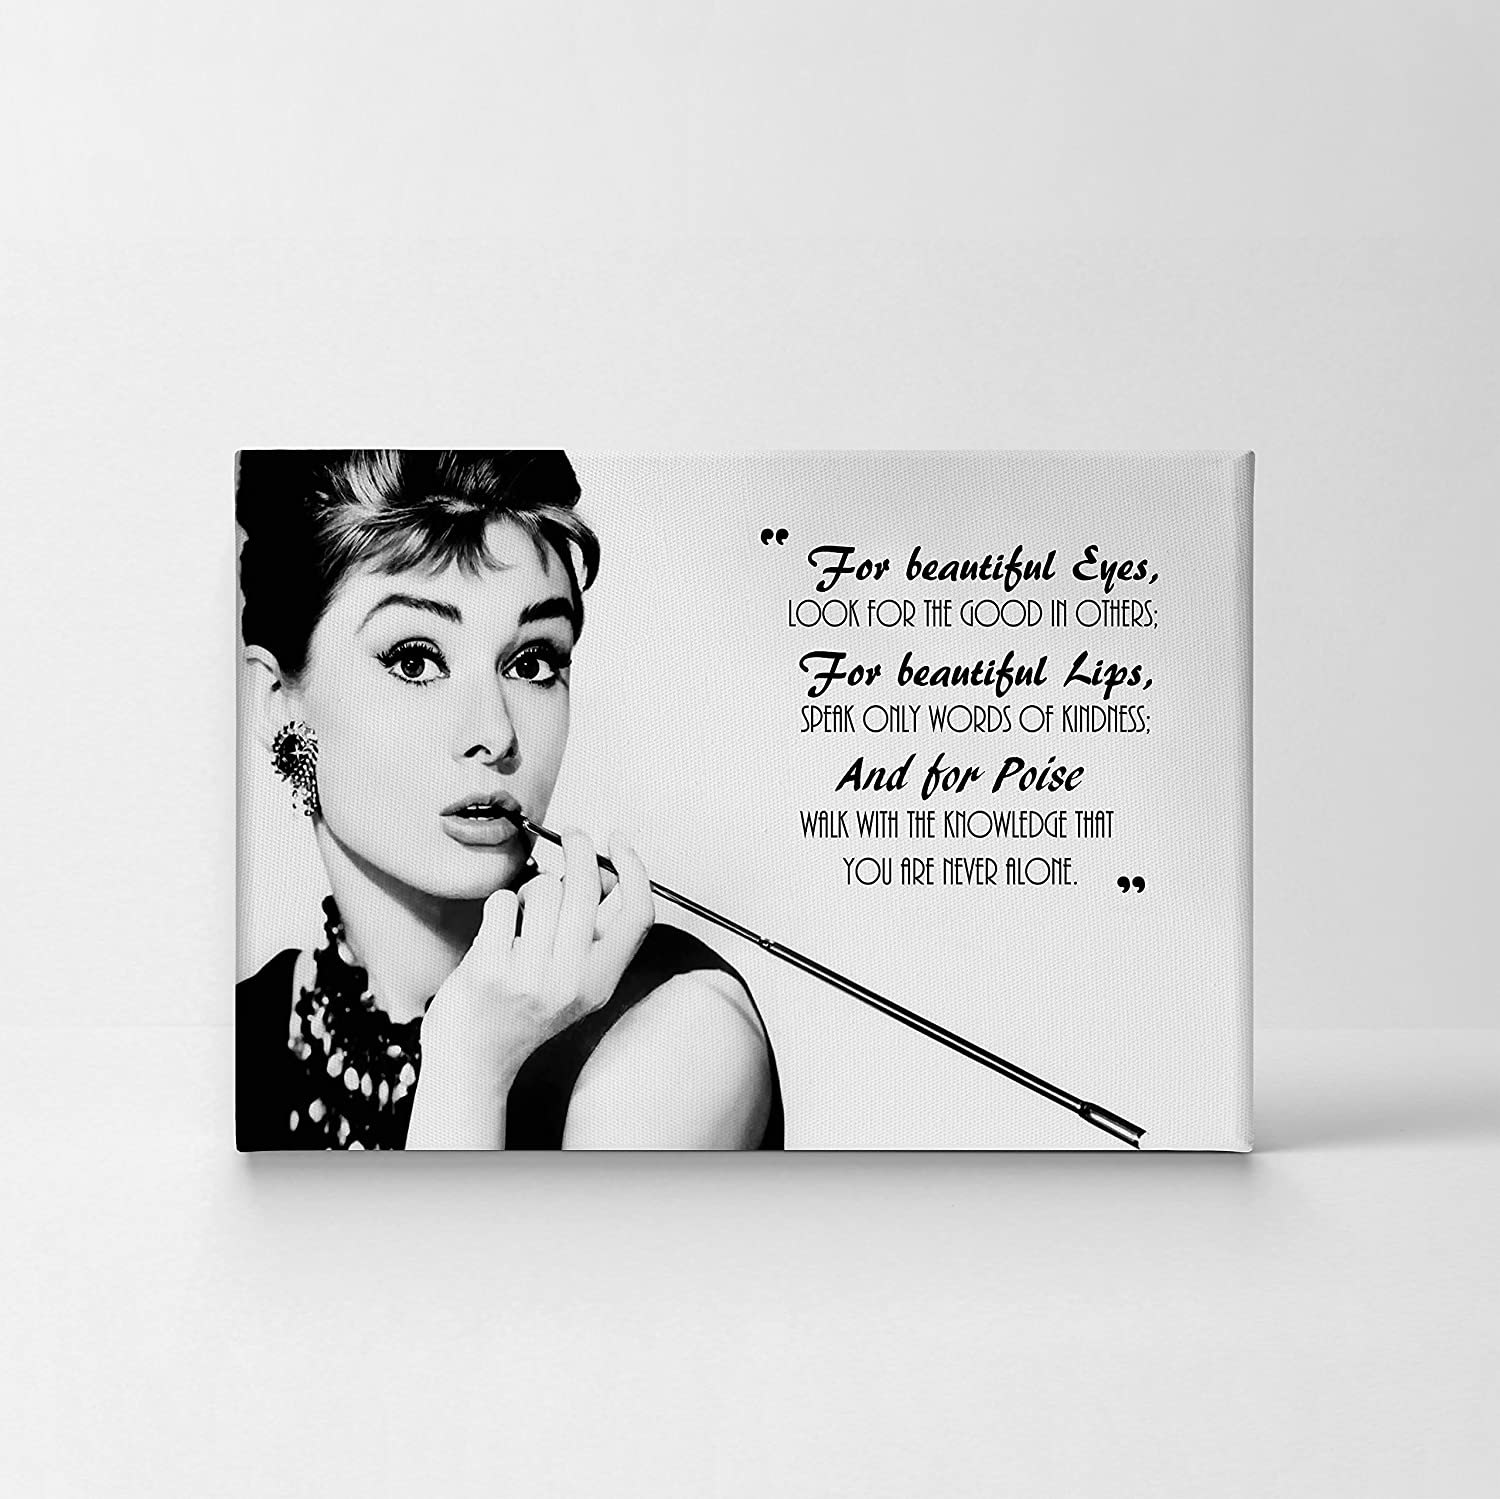 Audrey Hepburn Breakfast at Tiffany s Quotes Canvas Print Decorative Art Modern Wall D cor Artwork Stretched – Ready to Hang – 100 Handmade in the USA – 11×17